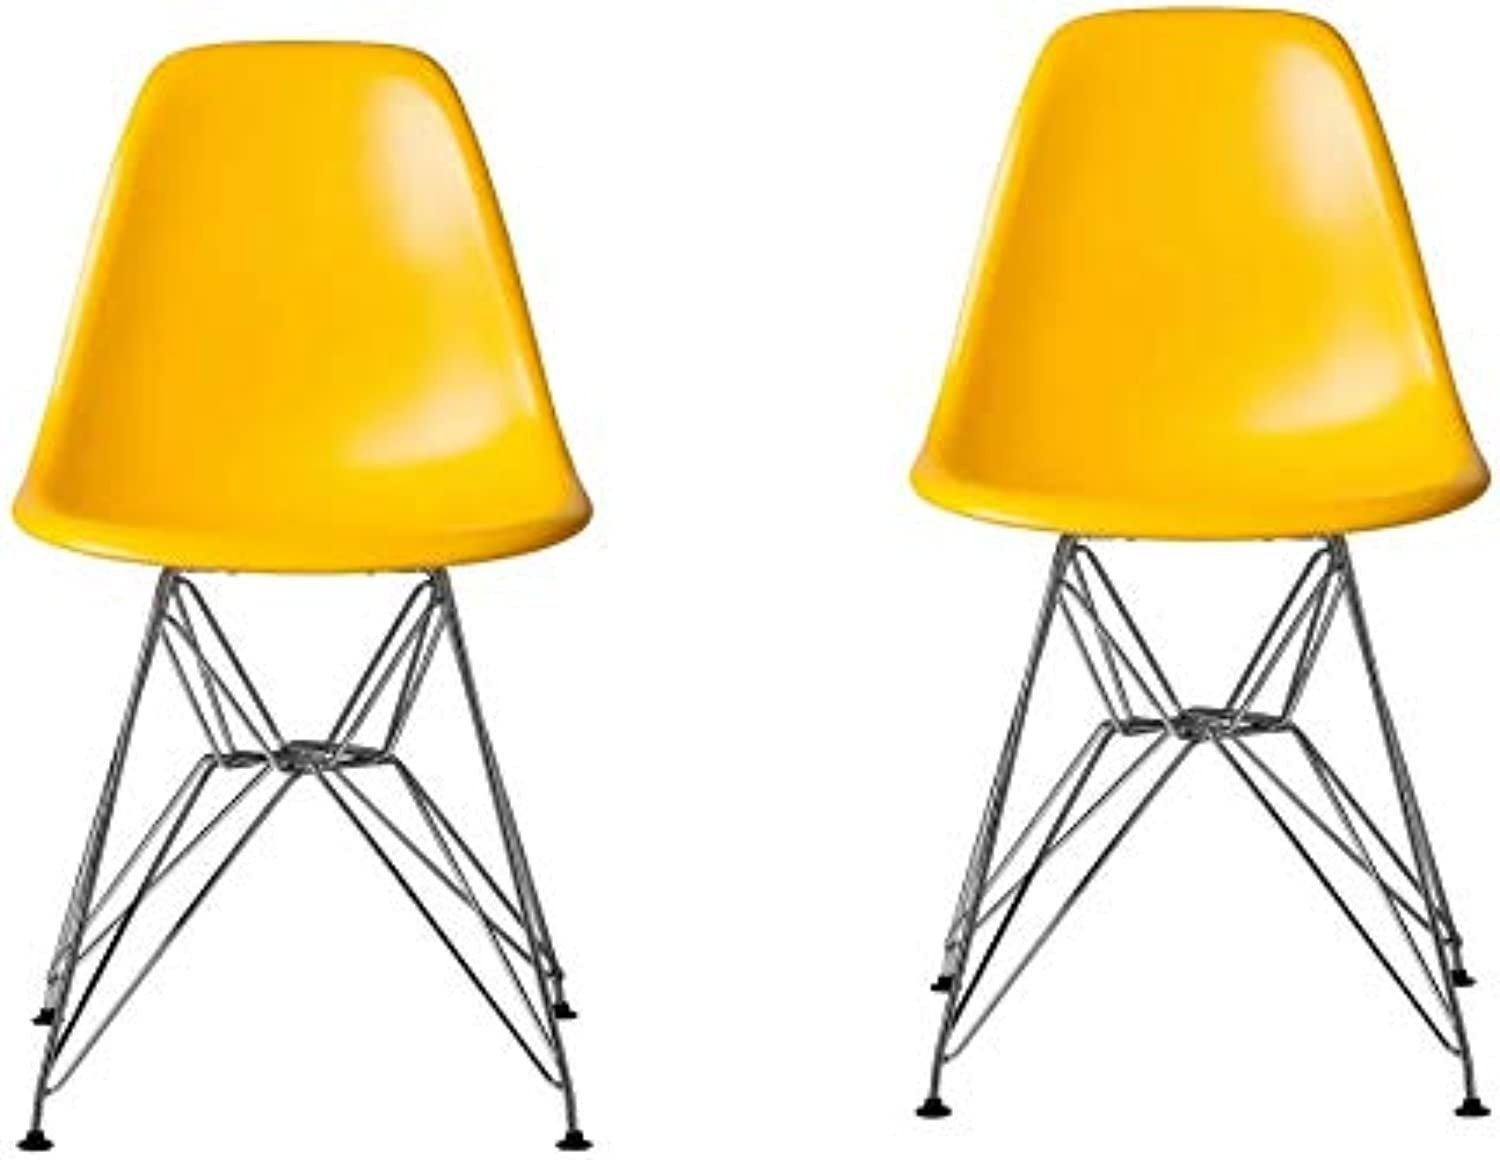 Take Me Home Furniture Eames Style Side Chair with Chrome Legs Eiffel Dining Room Chair - Set of 2 (Yellow)